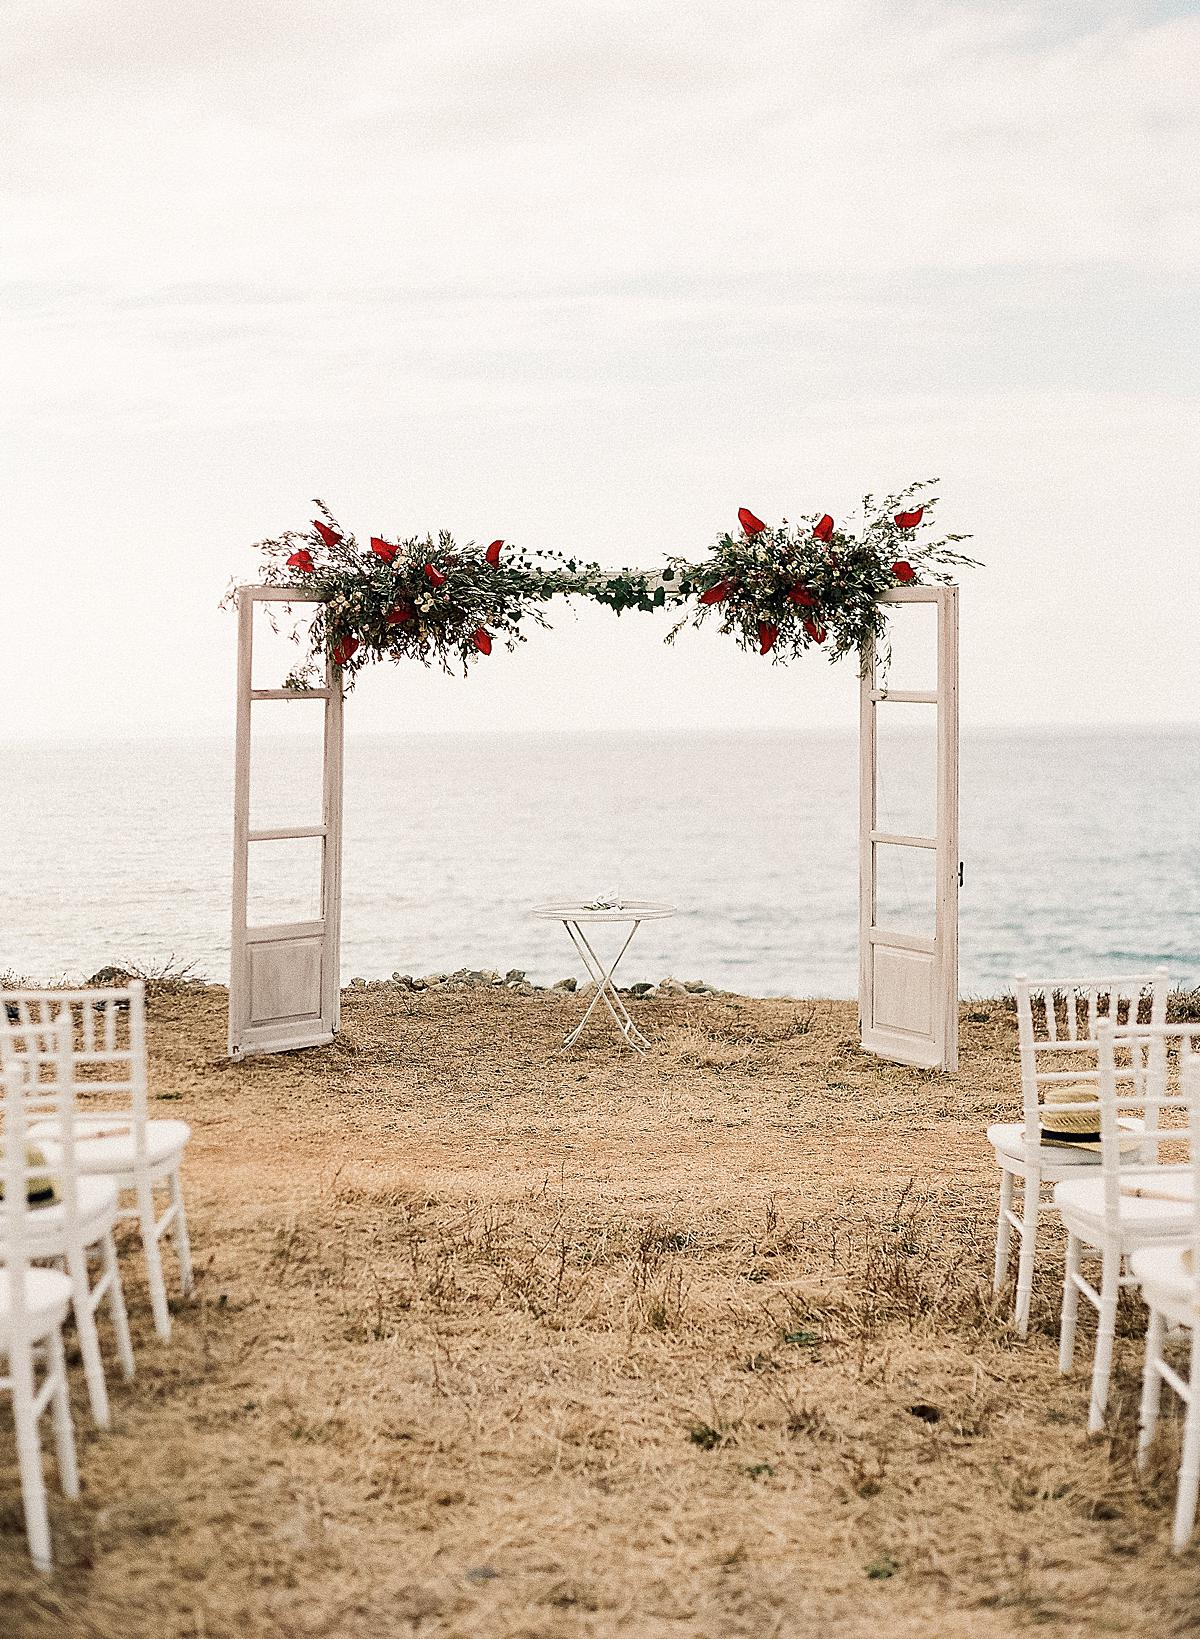 ceremony set up overlooking the cliffs in Creta